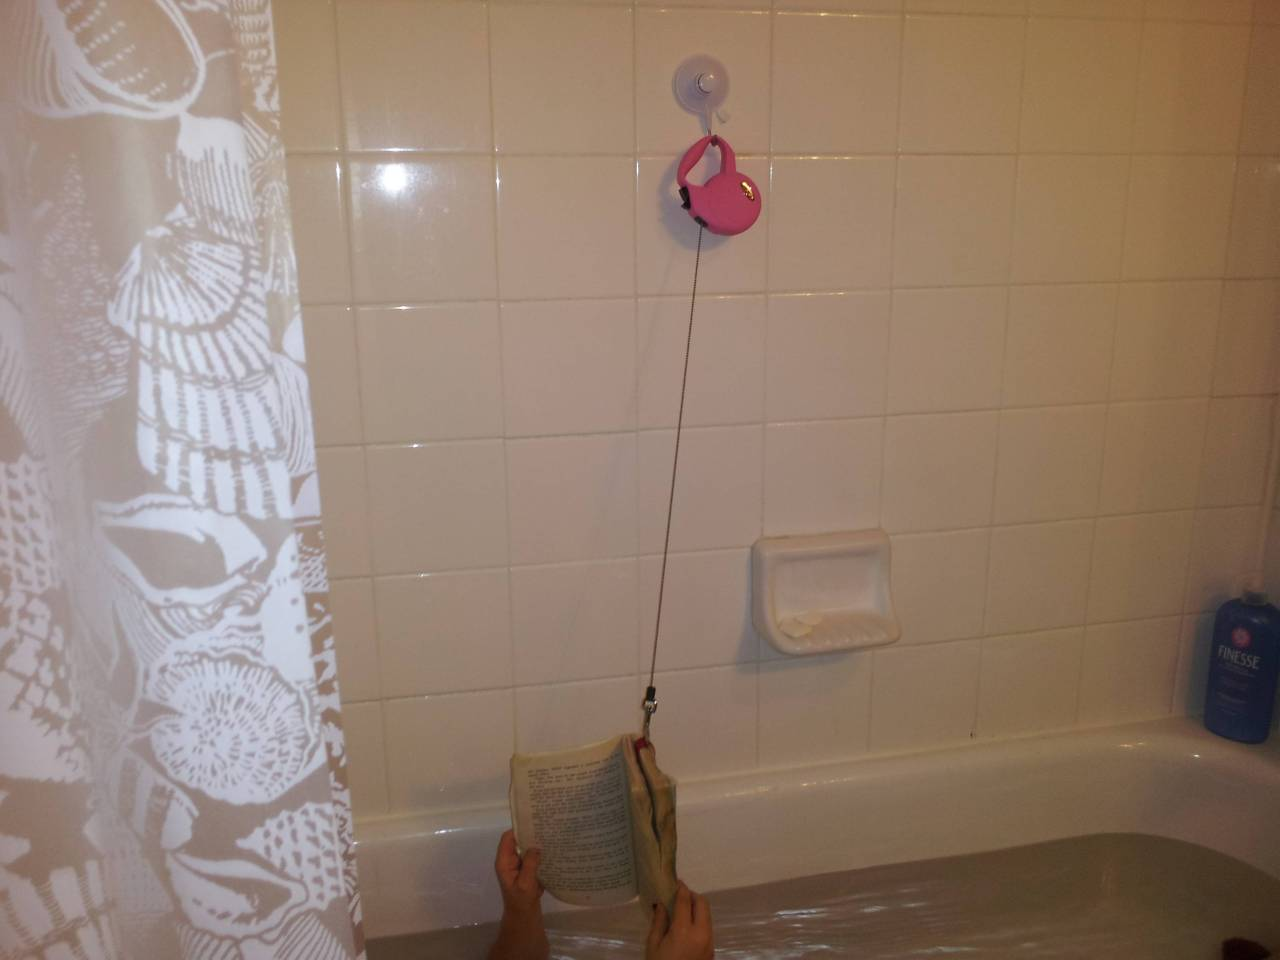 alegbra:  valerieparker:  writers-bloc:  Never drop a book in the bath again! An 8 year old's invention.   that eight year old is the chosen one  are we gonna ignore the fact that the book is completely soaked in water